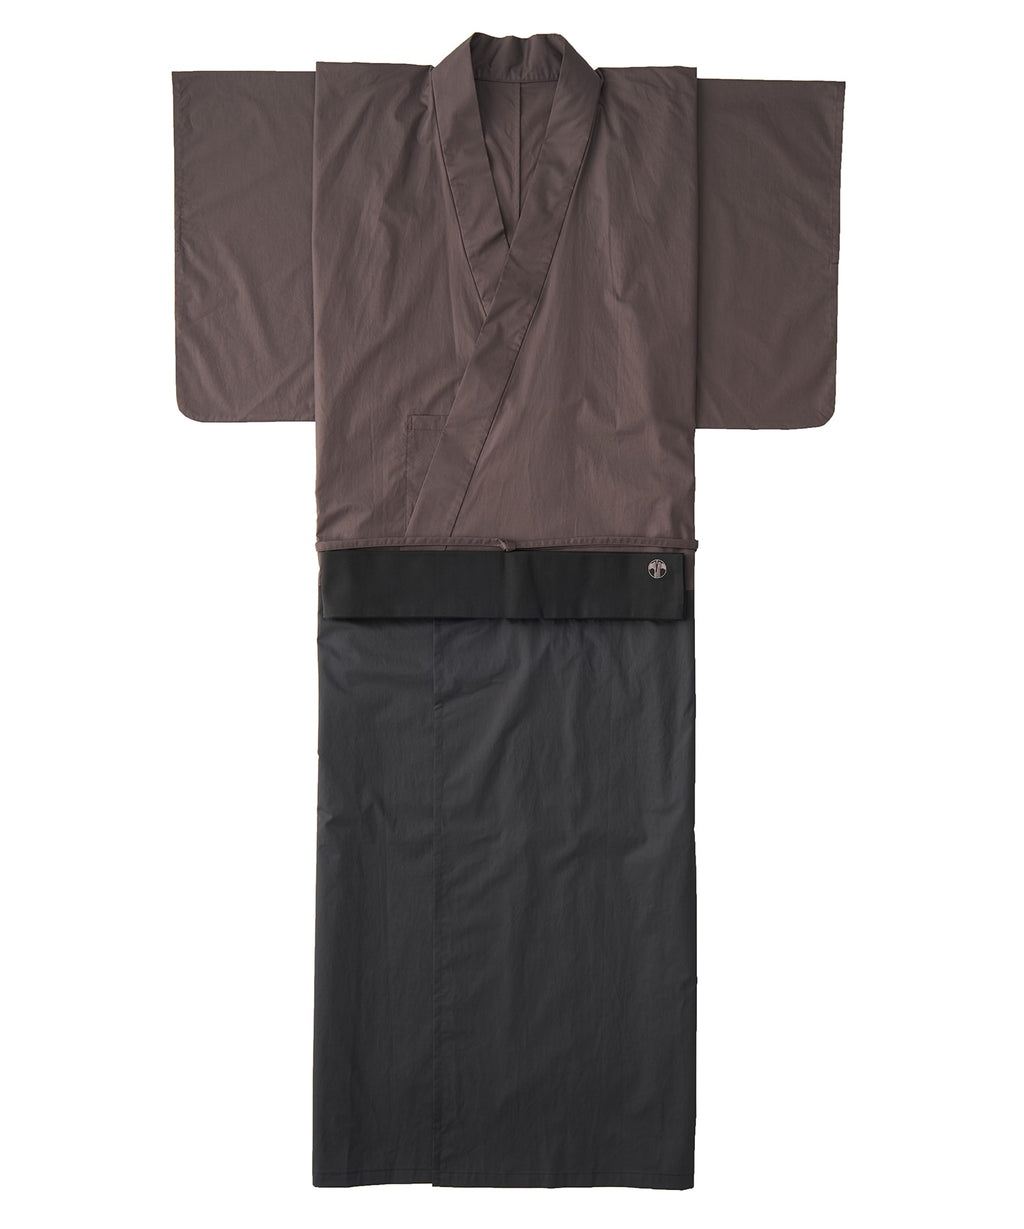 WAROBE / BI-COLOR YUKATA / BROWN x BLACK